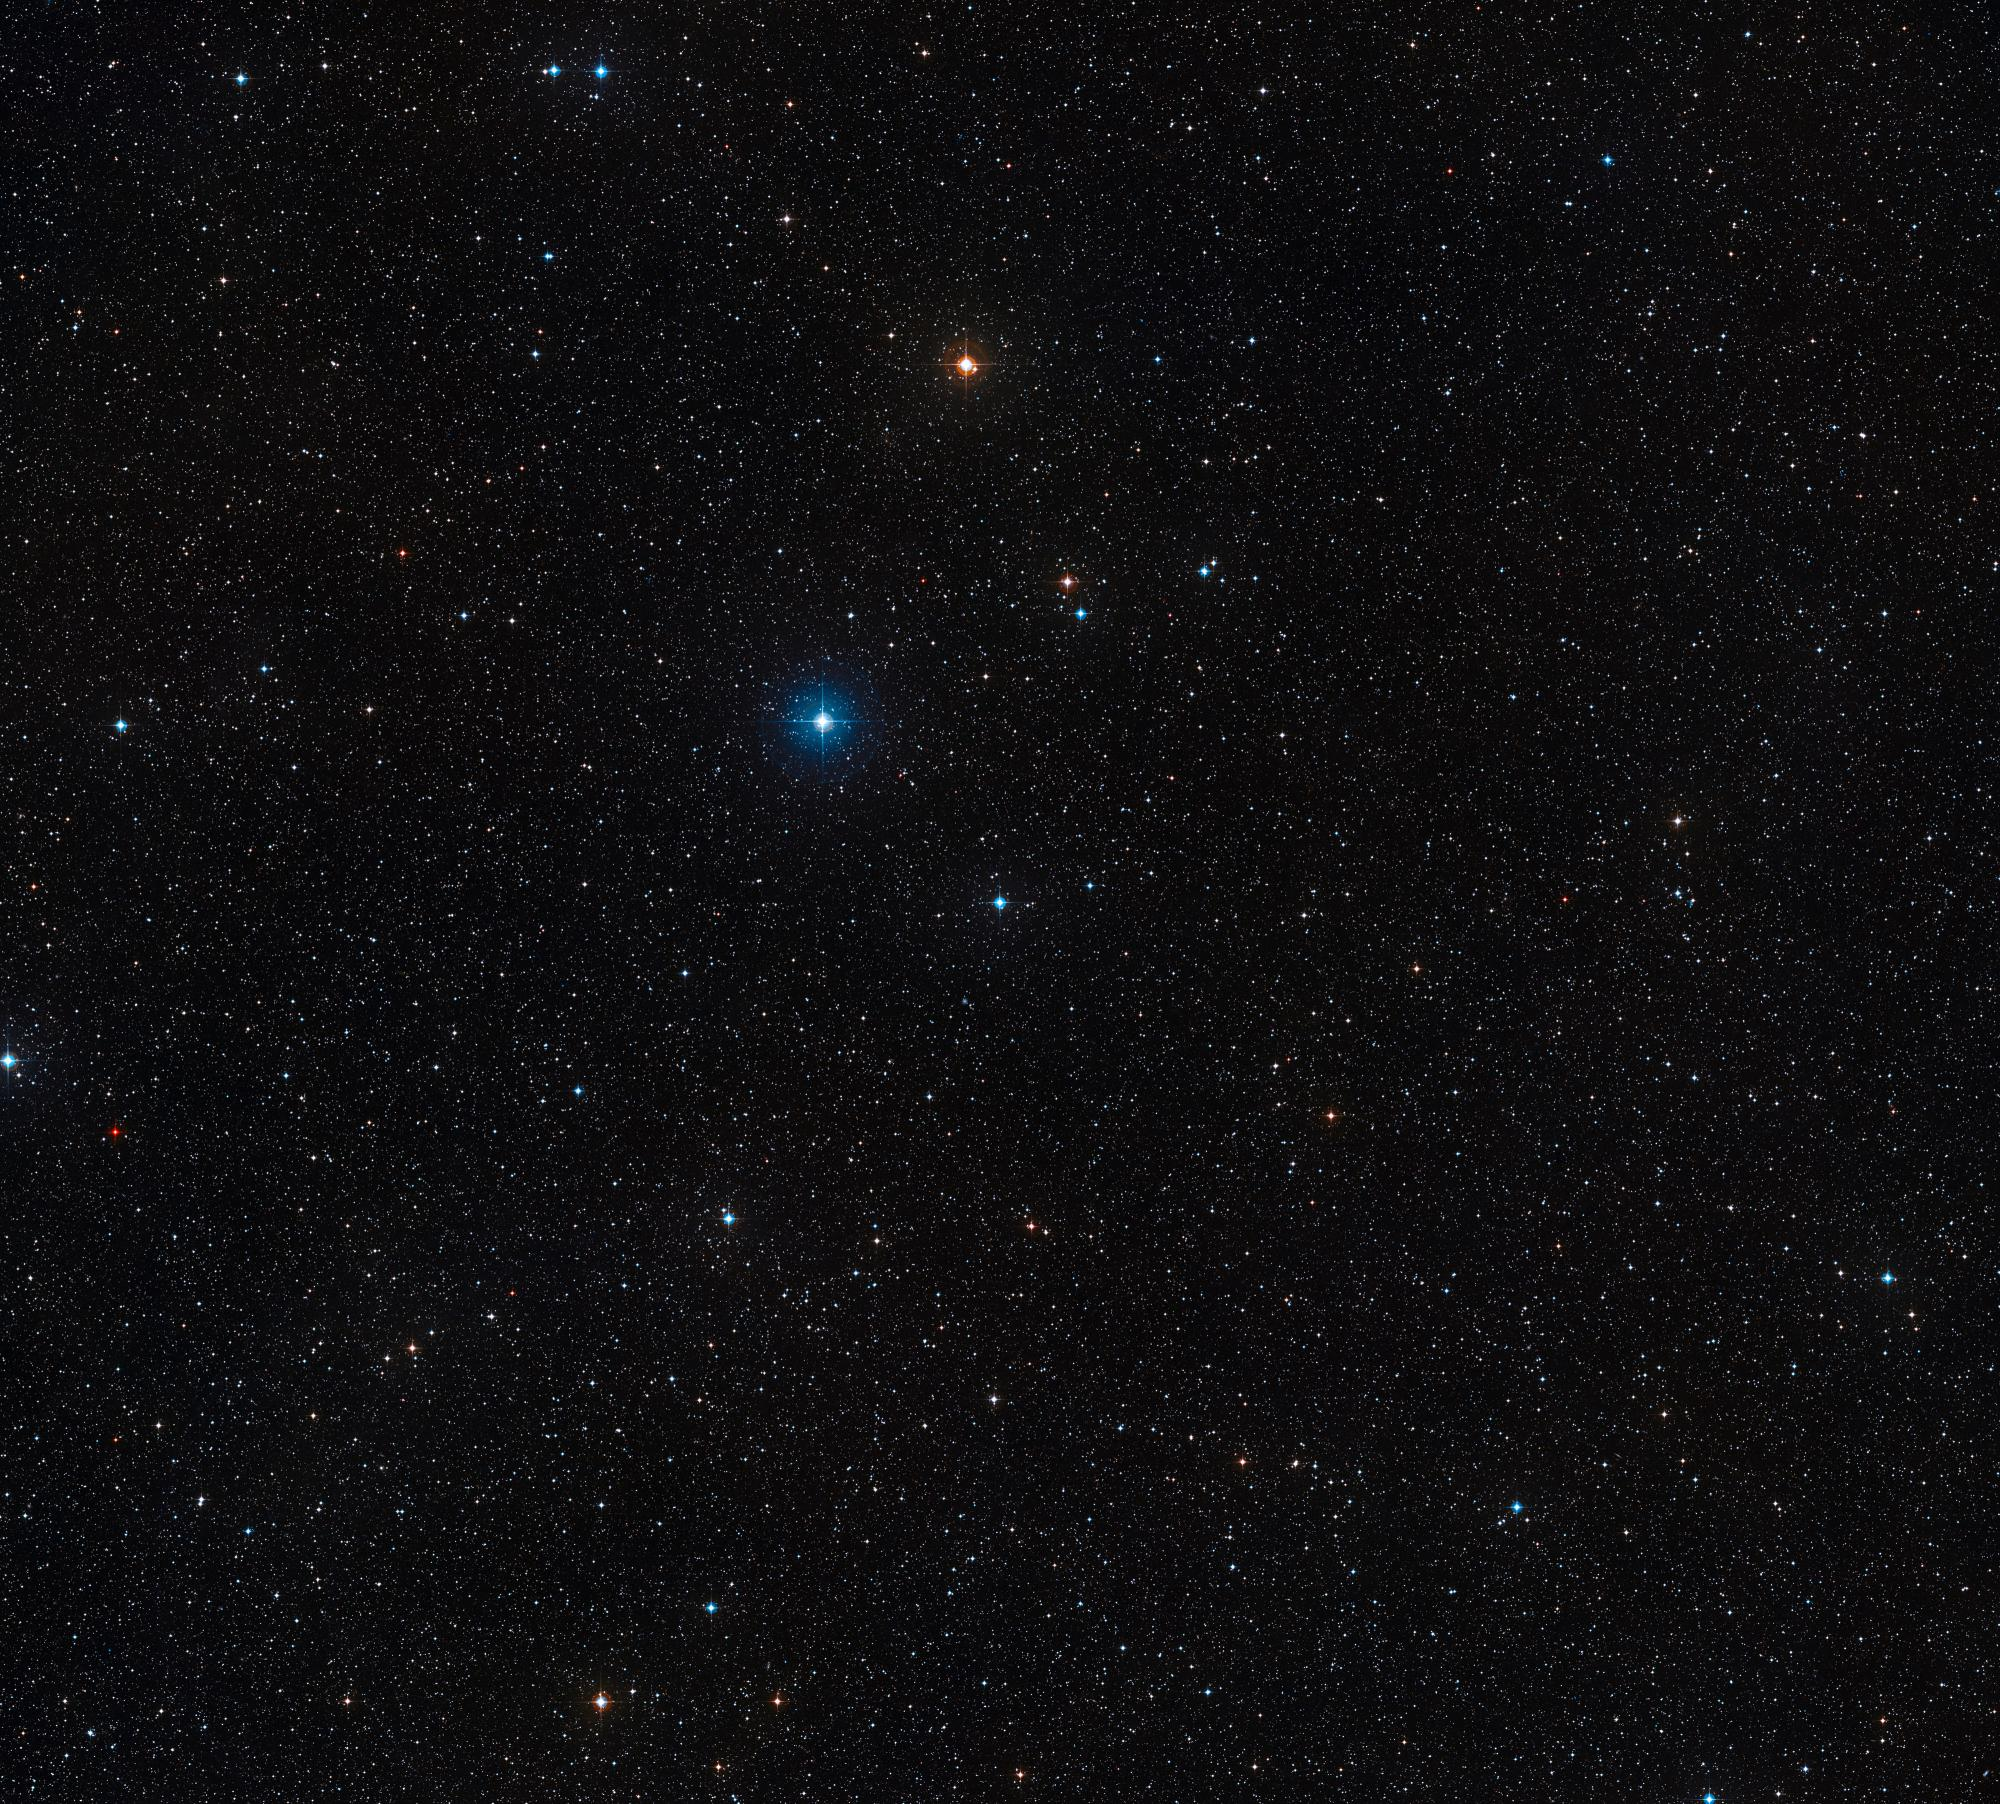 This wide-field image shows a piece of the constellation of Centaurus  centered on the position of the triple star HD 131399. It was created from images from the Digitized Sky Survey 2. HD 131399 itself appears as a star of moderate brightness exactly at